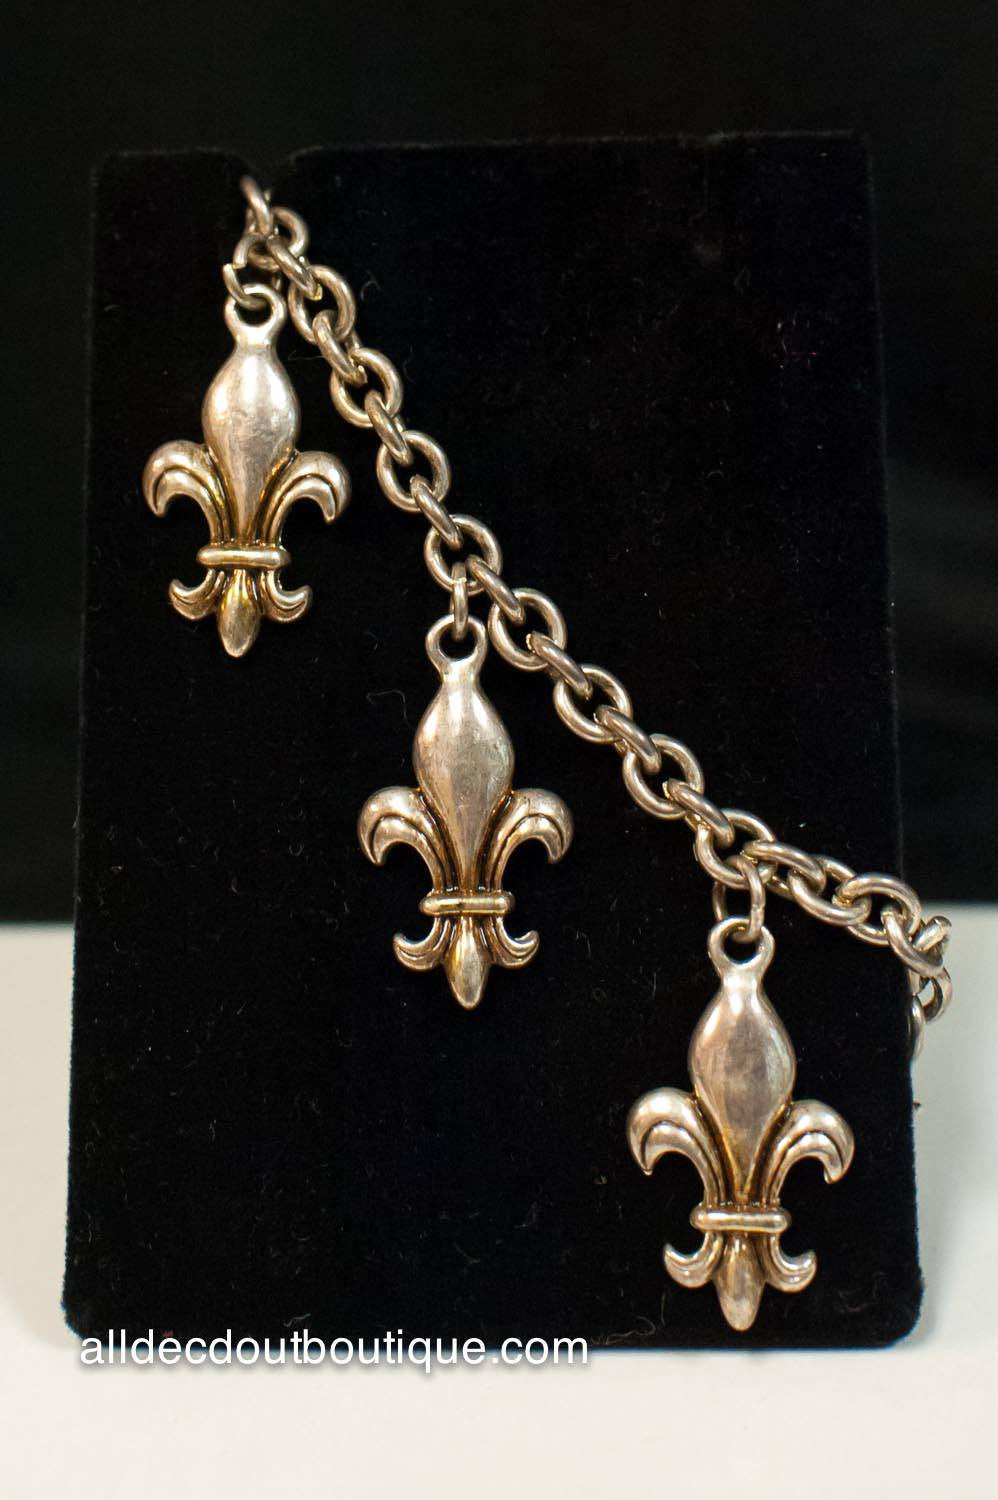 ADO | Silver Metal Fleur De Lis Charm Bracelet with Adjustable Clasp